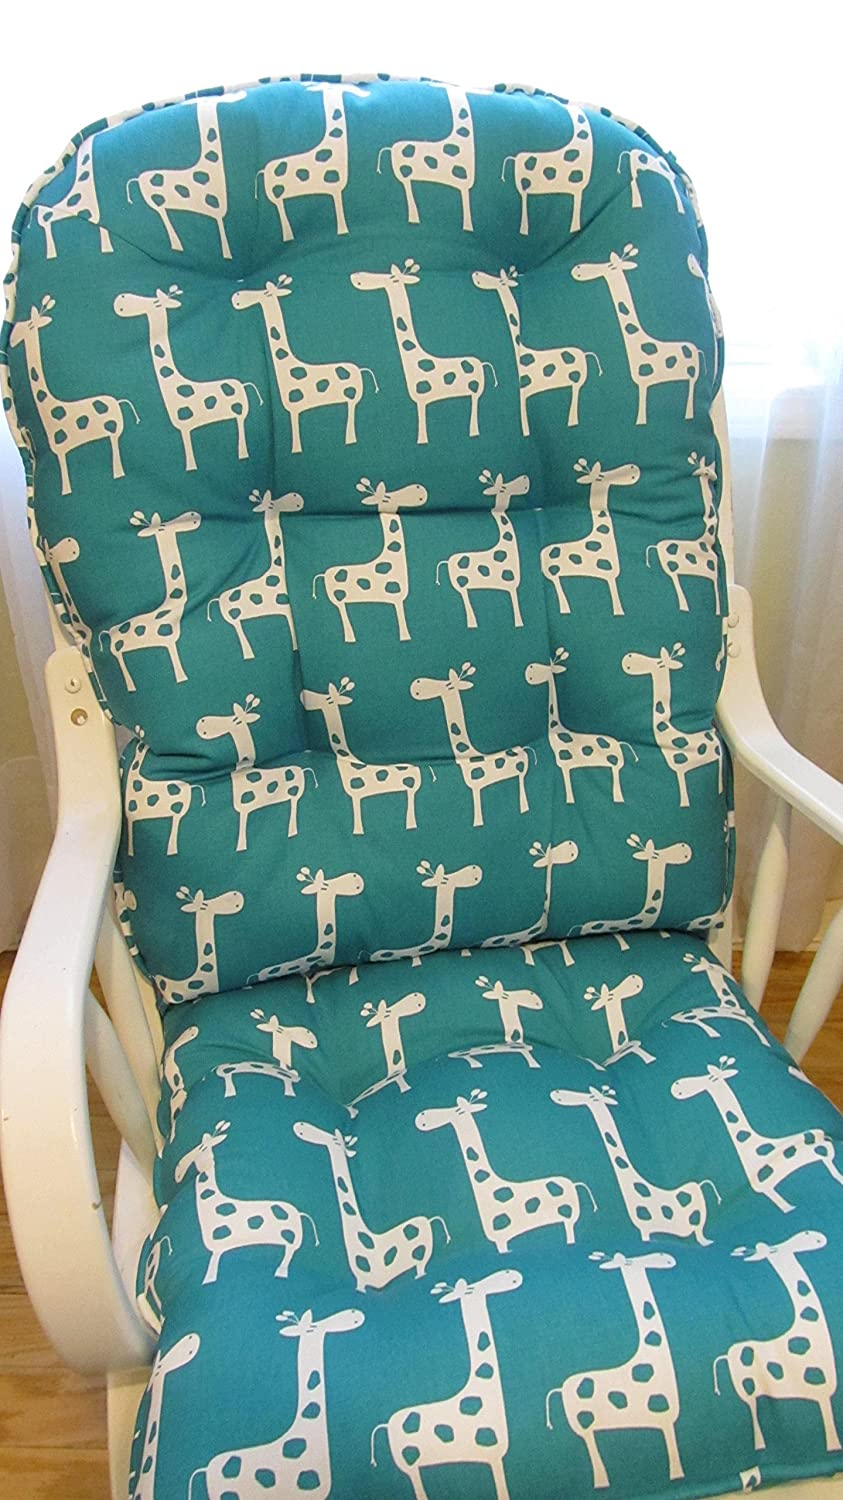 Fabulous Amazon Com Cushion Set For Nursery Glider Or Rocking Chair Bralicious Painted Fabric Chair Ideas Braliciousco